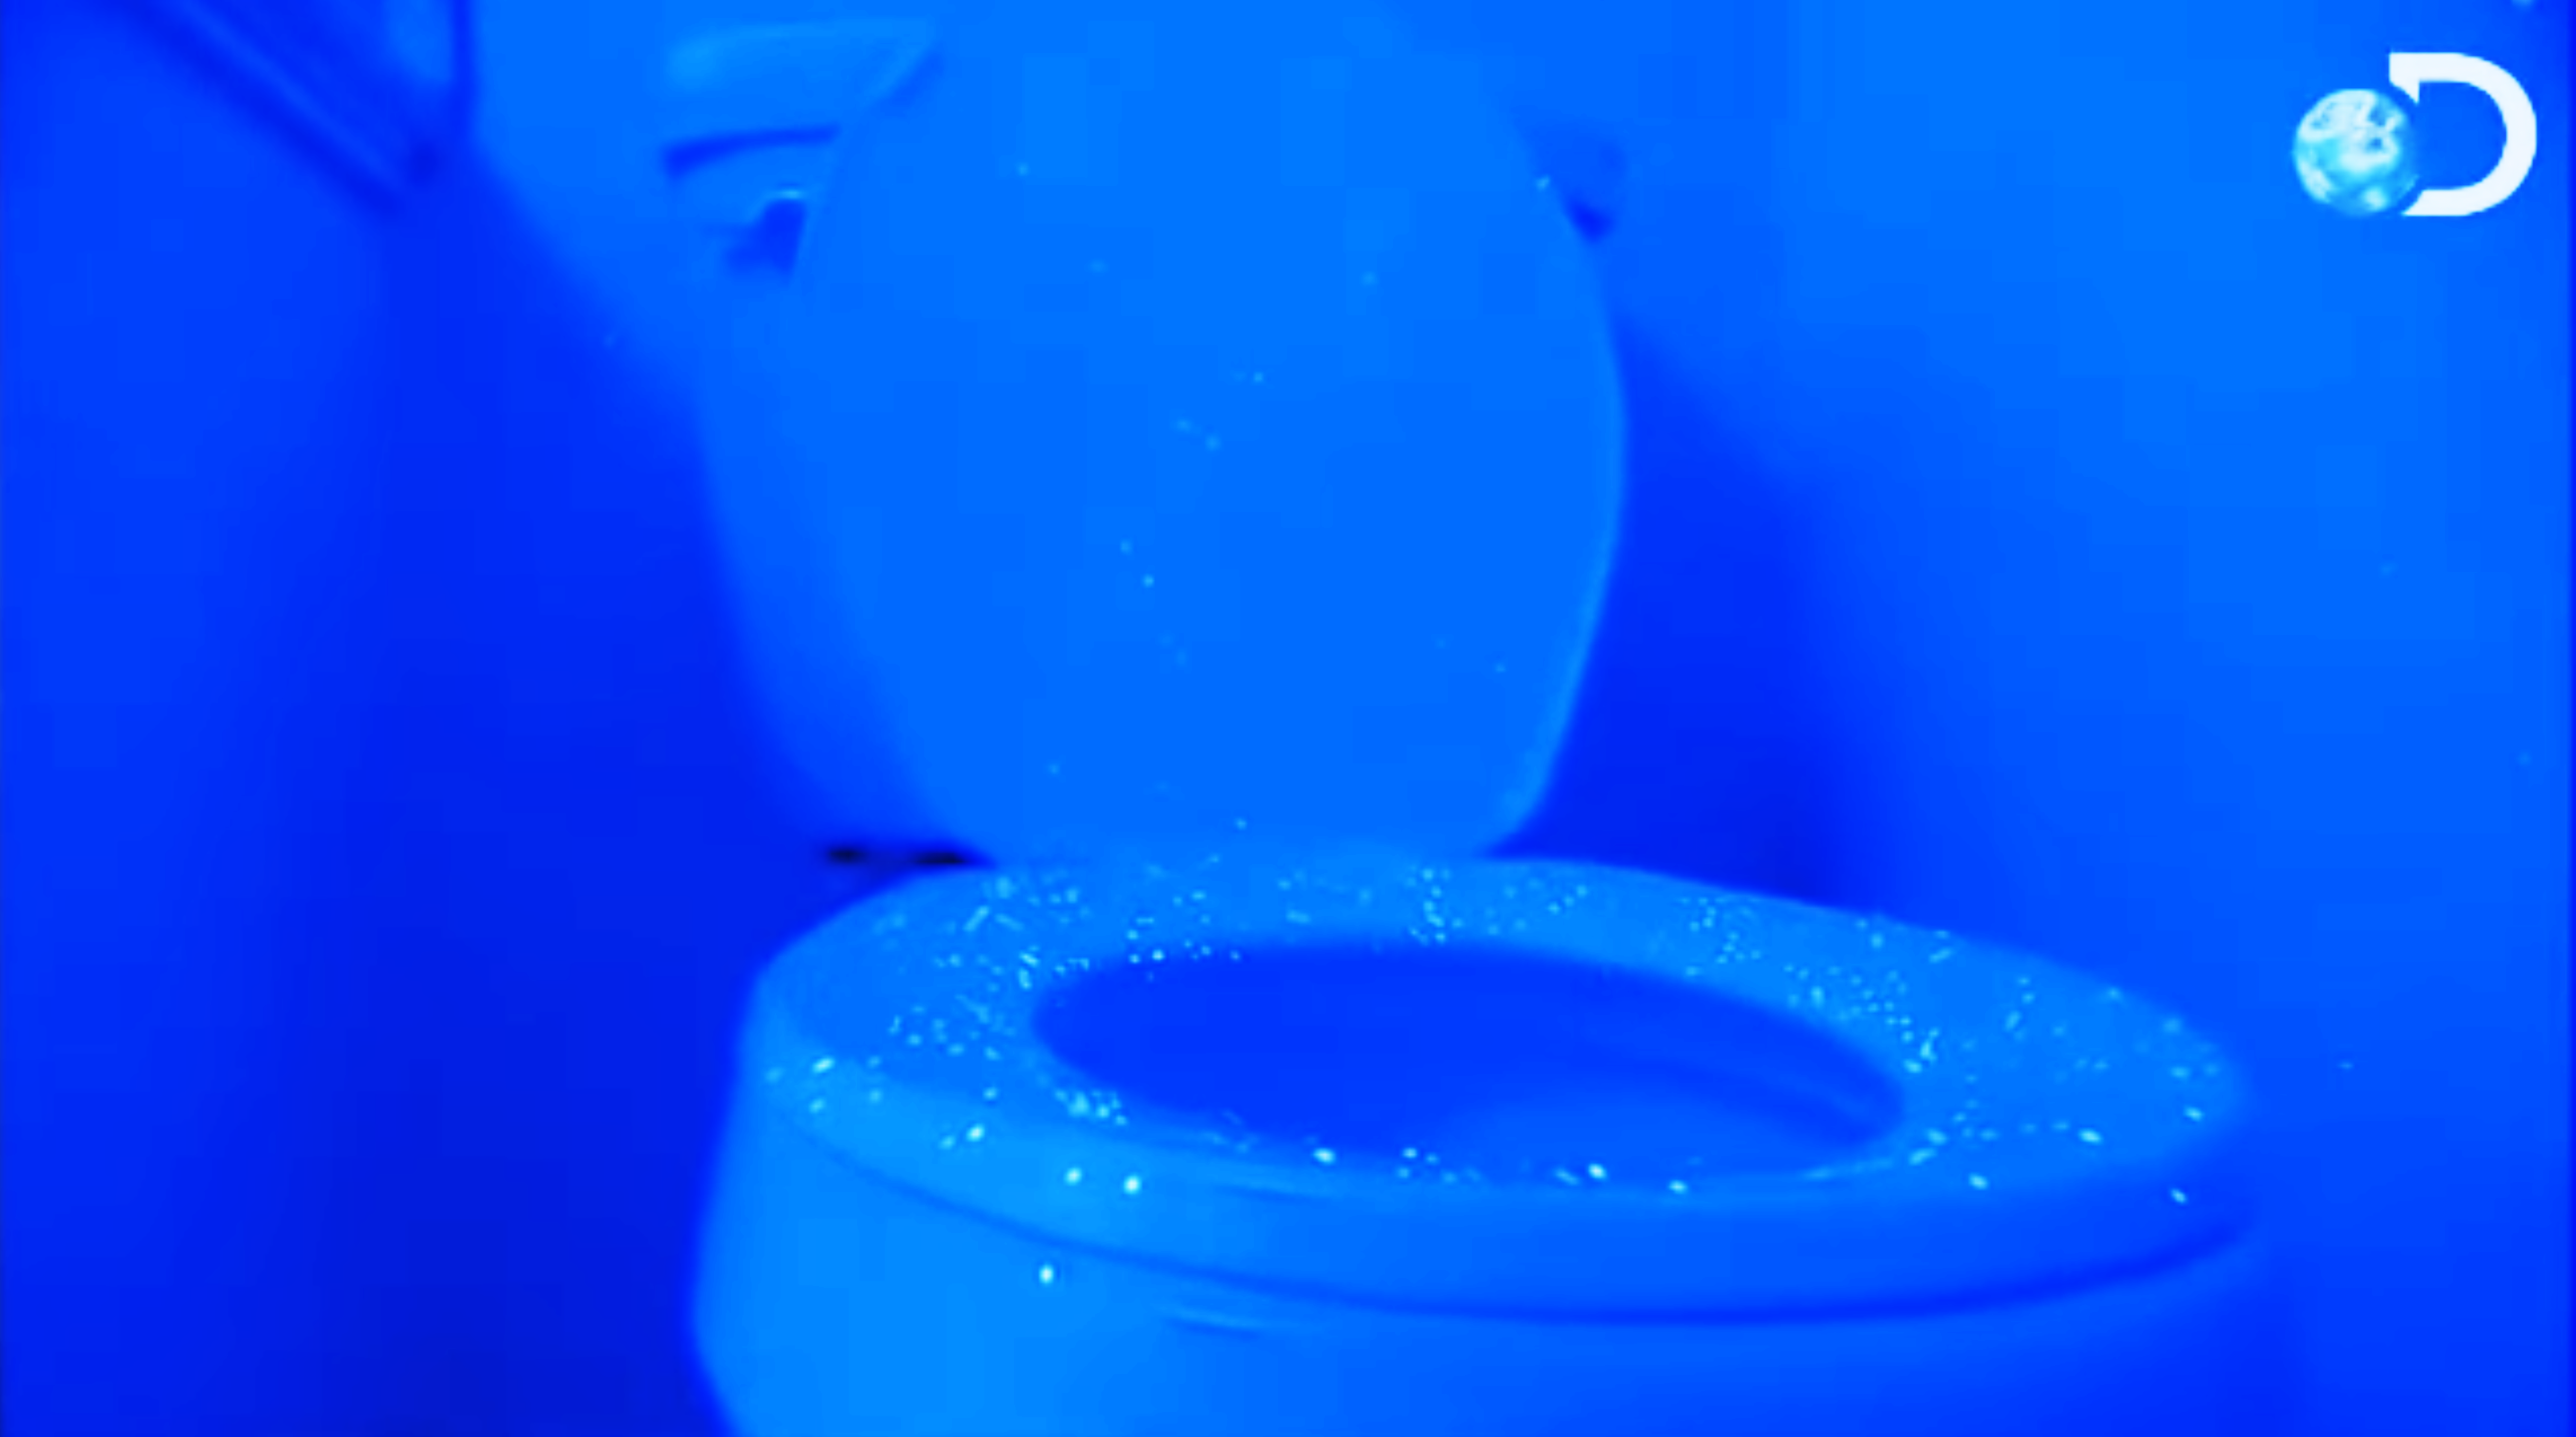 The blacklight shows spatter all over the toilet seat